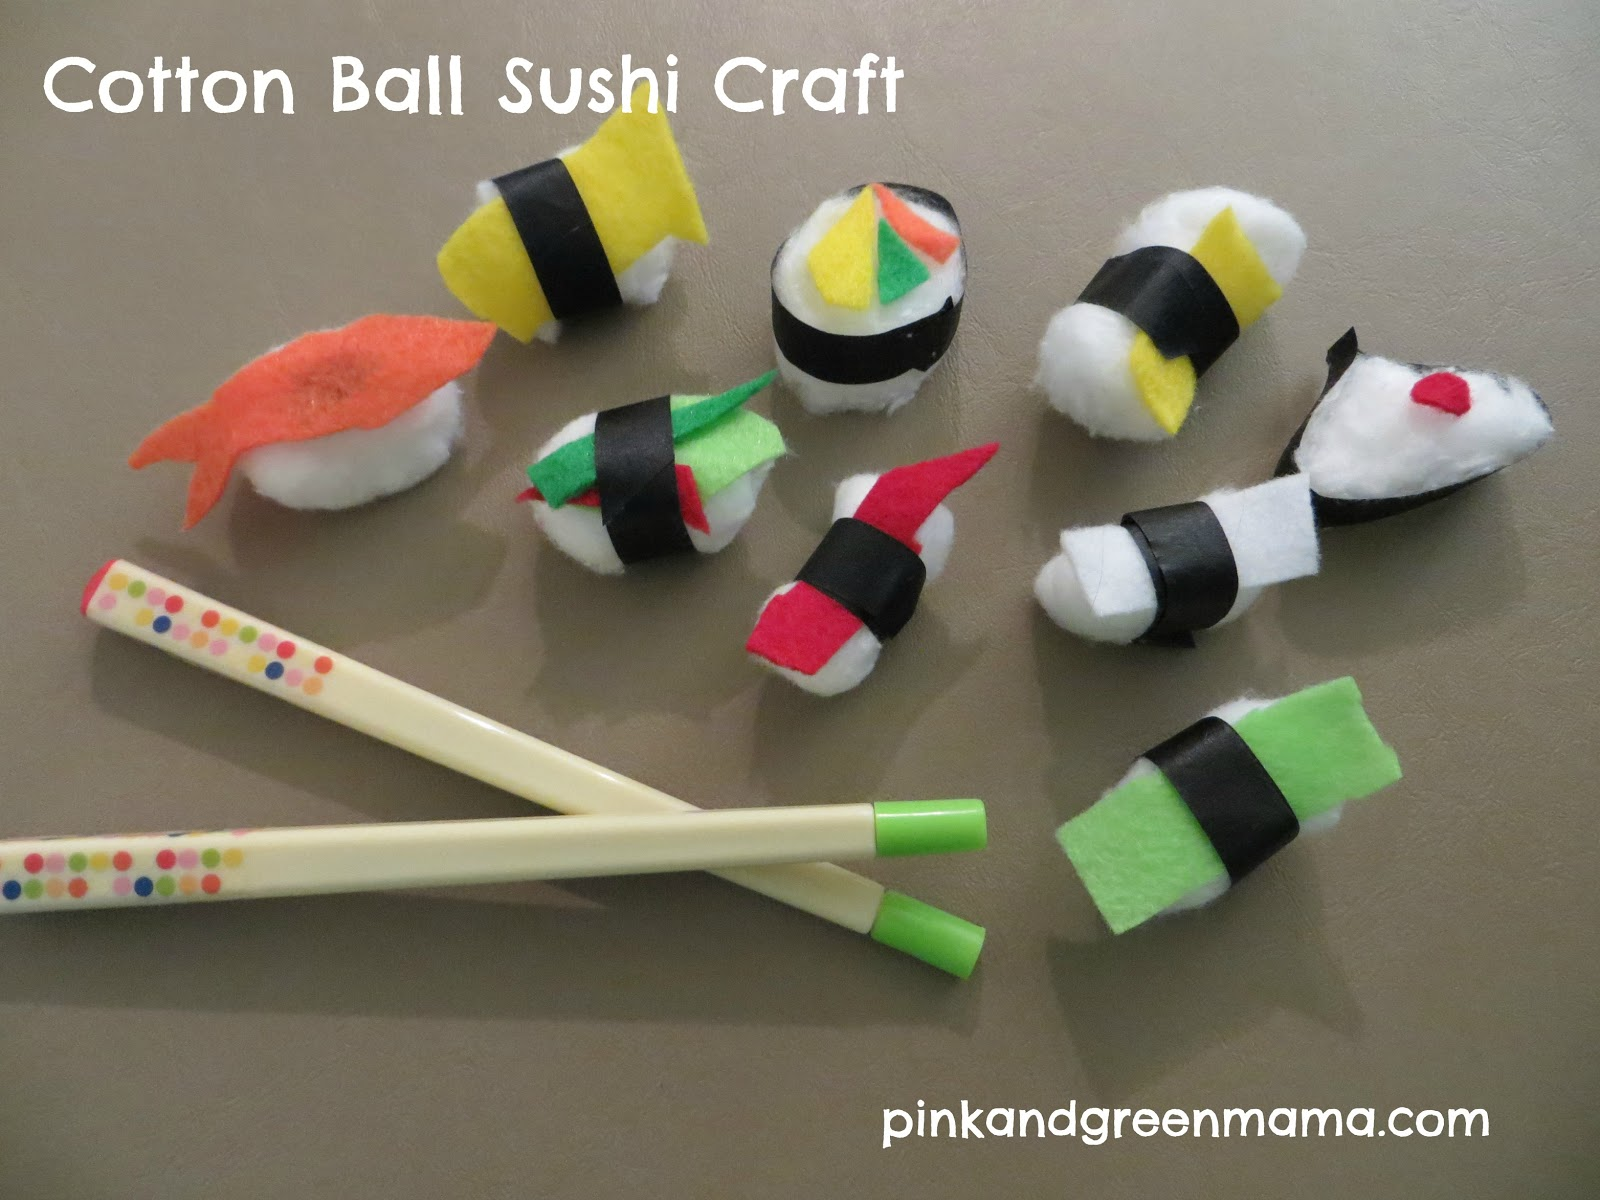 Pink and green mama cotton ball sushi craft - Cotton ballspractical ideas ...